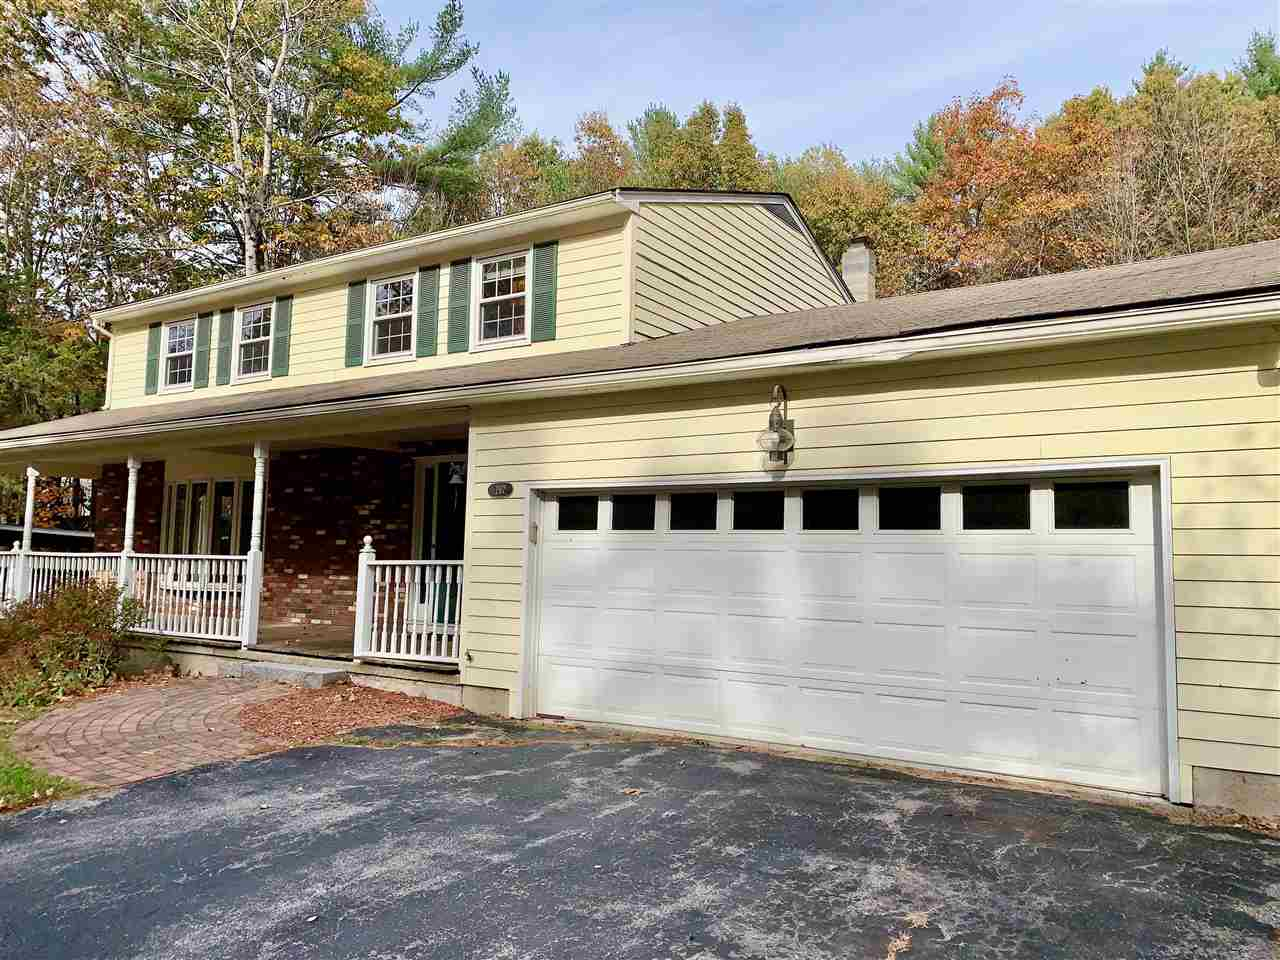 Photo of 197 Beals Road Bedford NH 03110